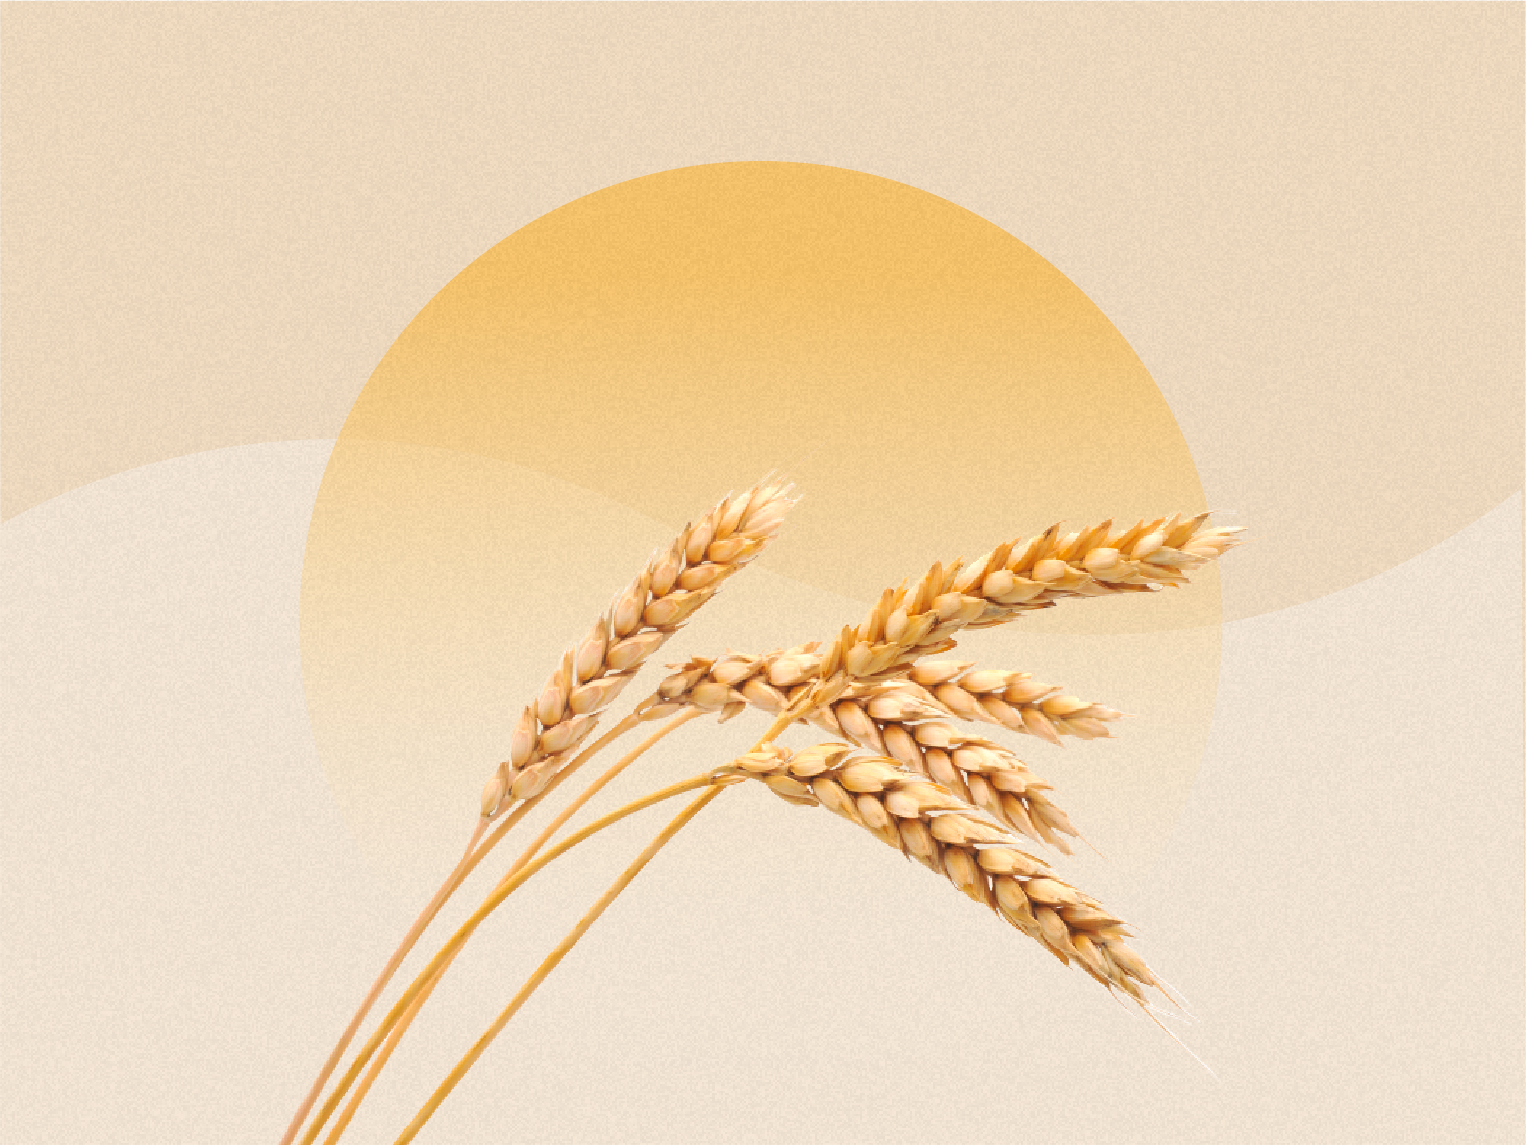 From Bulgar to Quinoa: What Grain Is Right for Your Diet?